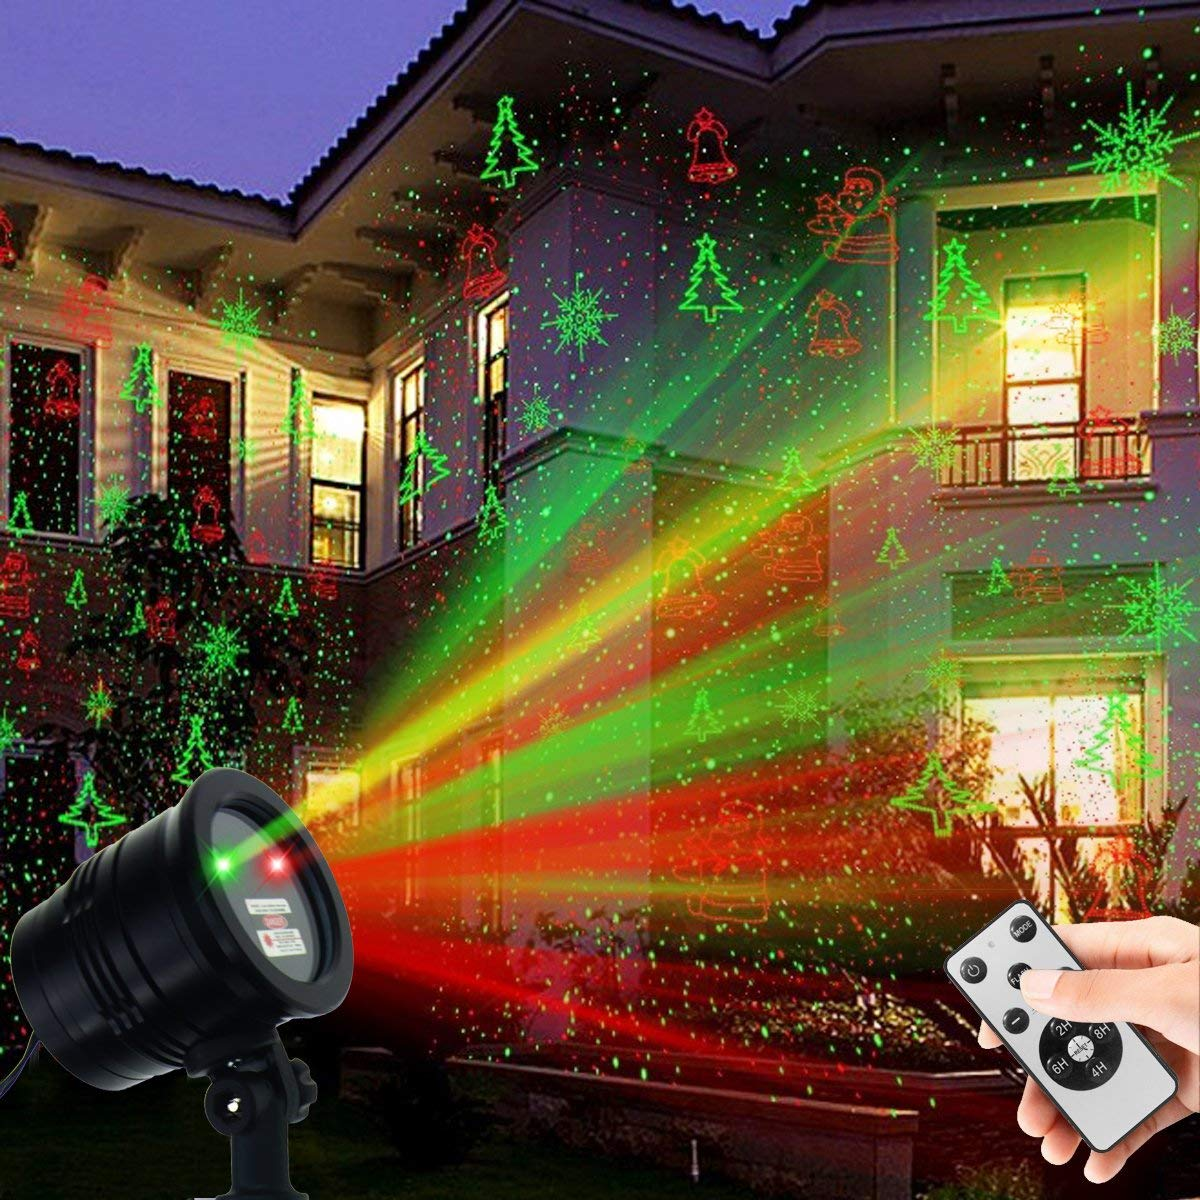 Christmas Laser Lights, Waterproof Projector Lights LED Landscape Spotlight Red and Green Star Show with RF Wireless Remote Christmas Decorative for Outdoor Garden Patio Wall Xmas Holiday Party by Yinuo Mirror